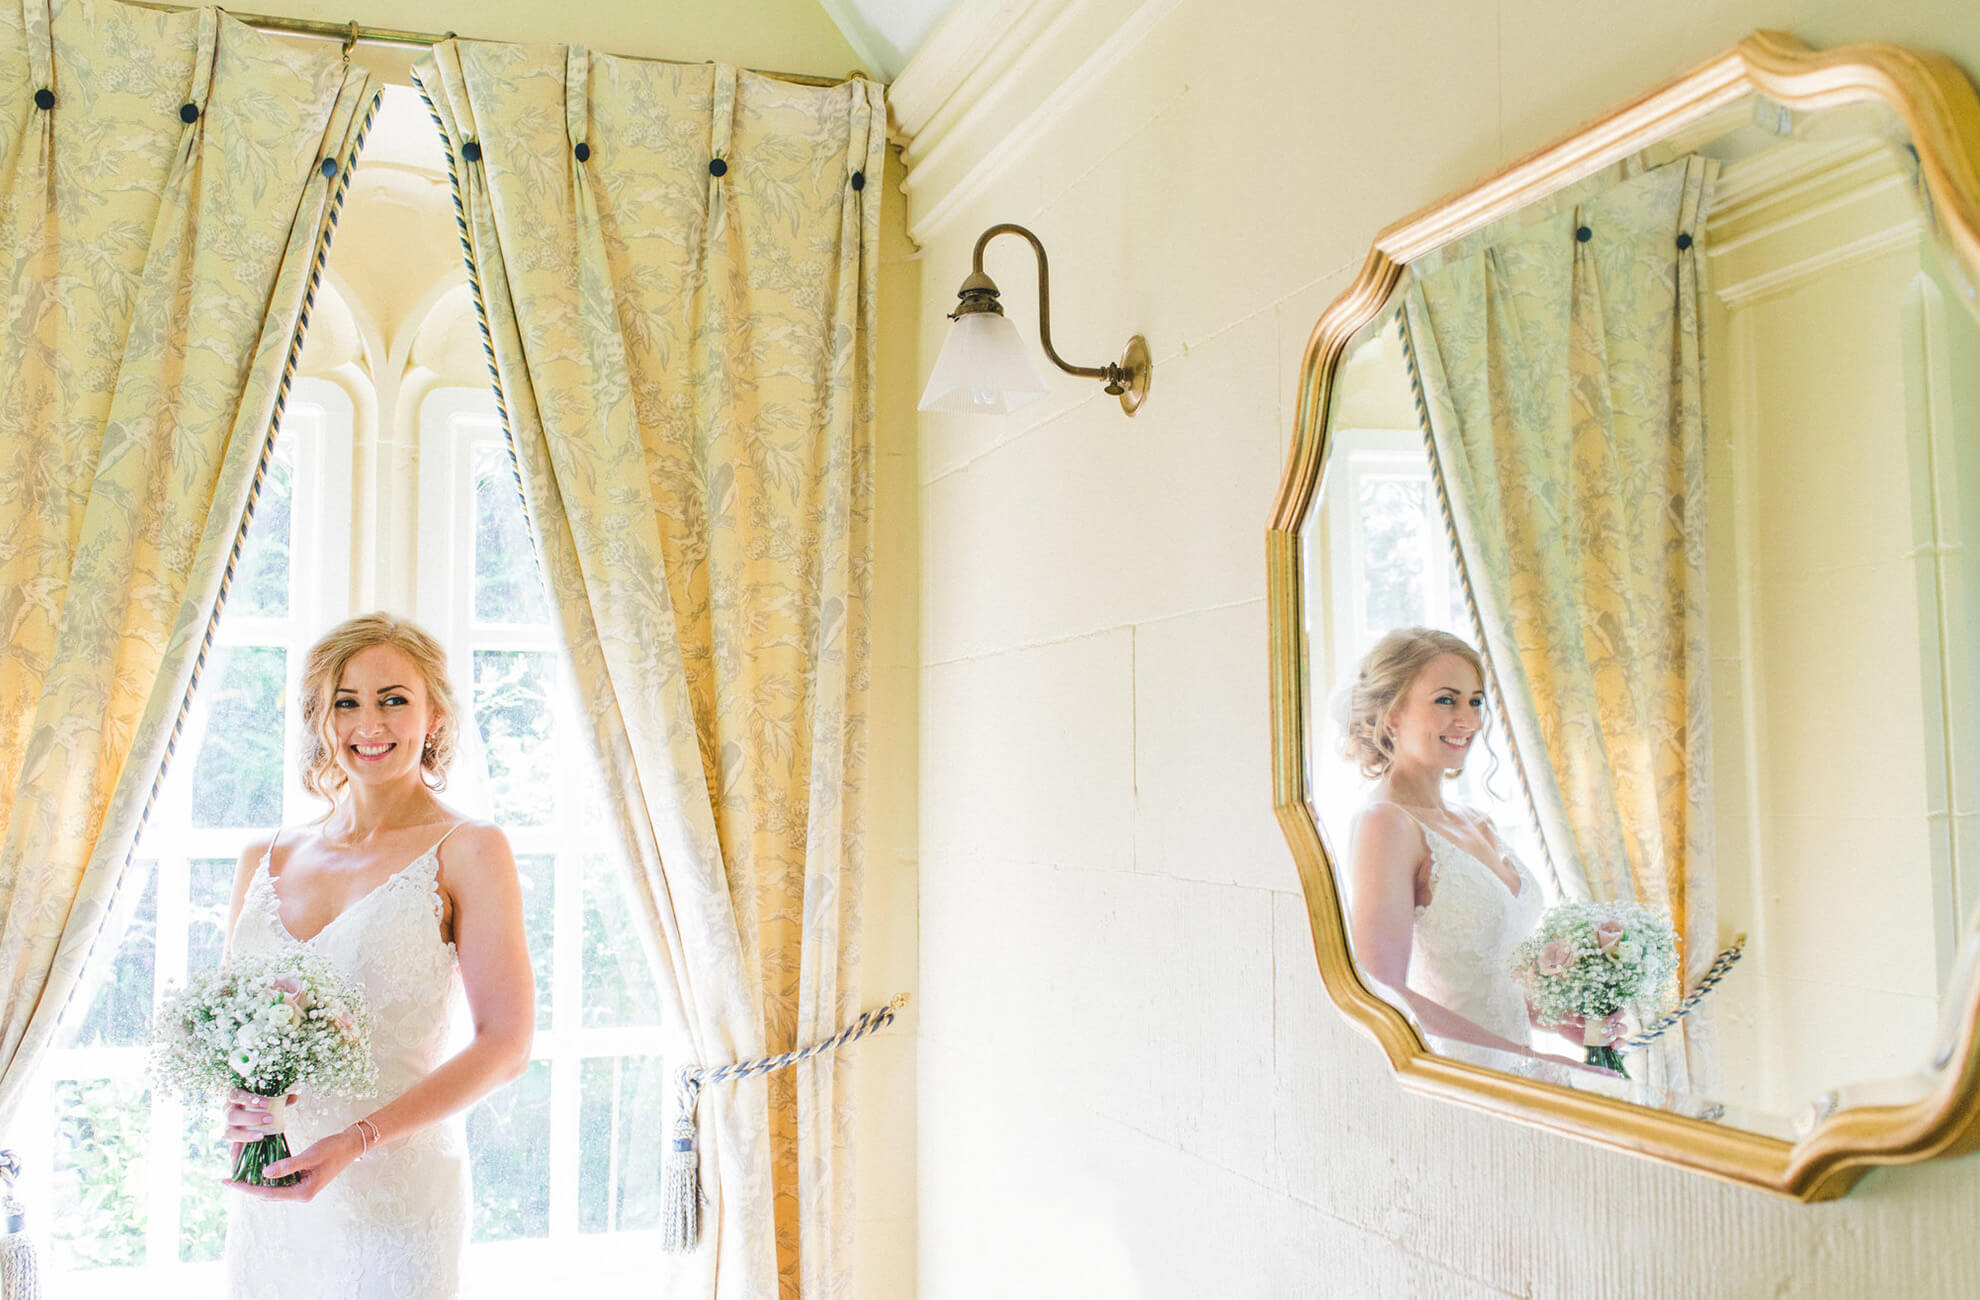 The bride prepares for her wedding day at Combermere Abbey wedding venue in Cheshire